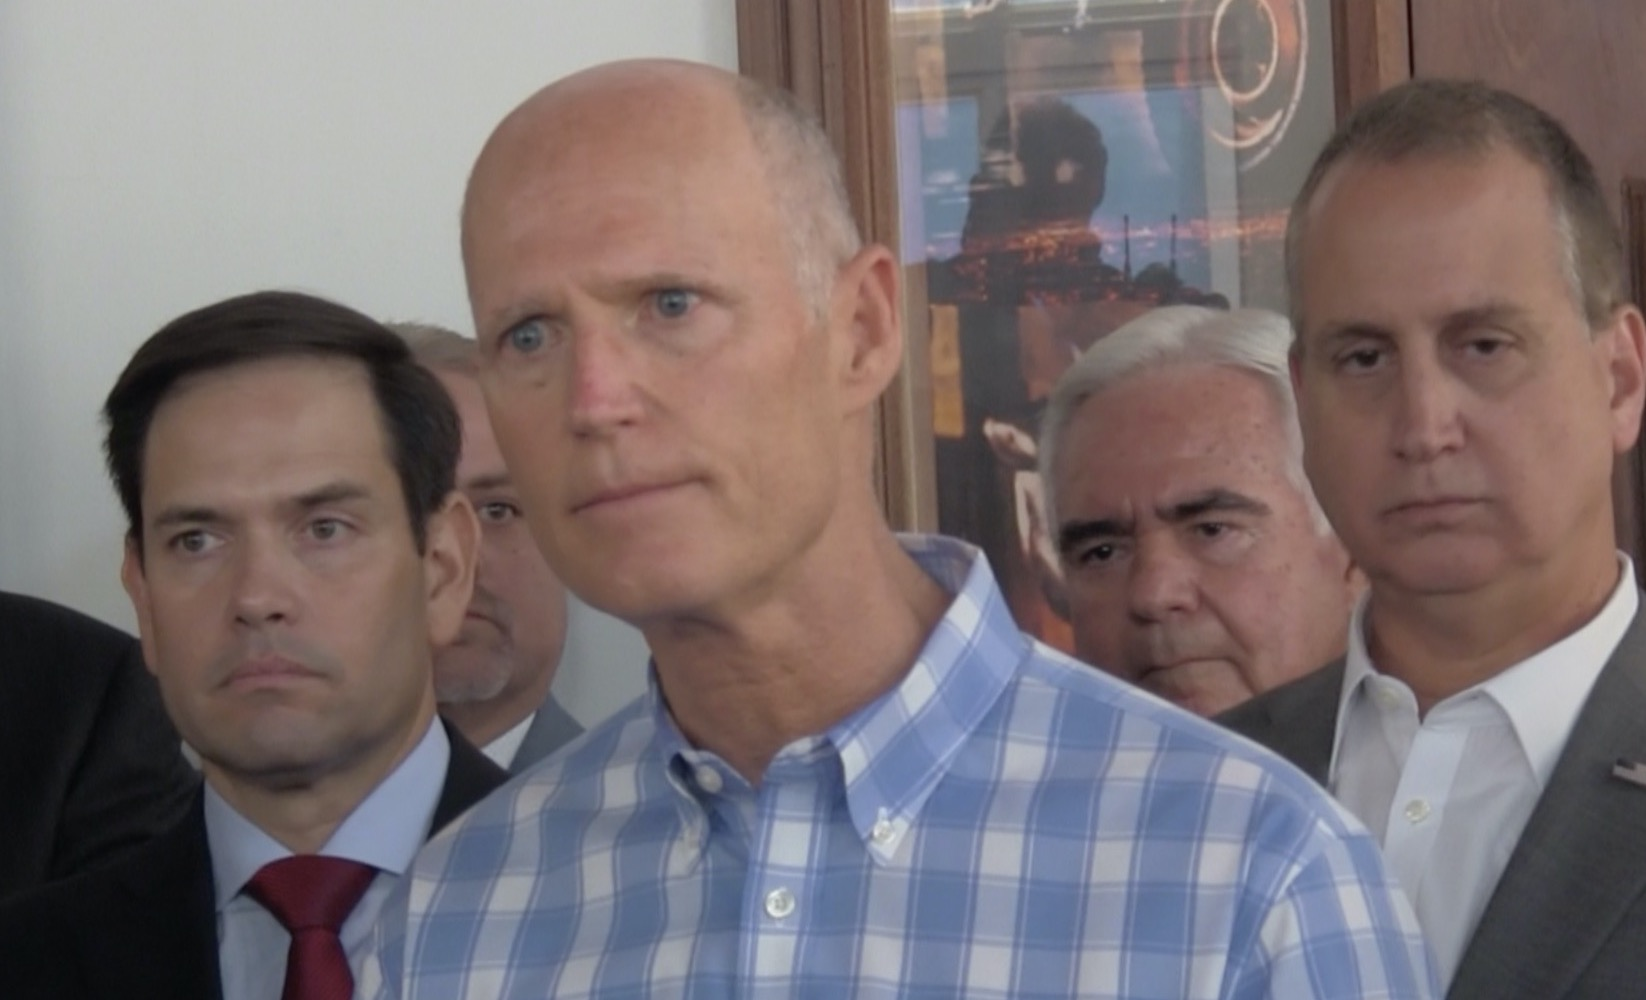 Rick Scott backs Dignity for Aborted Children Act